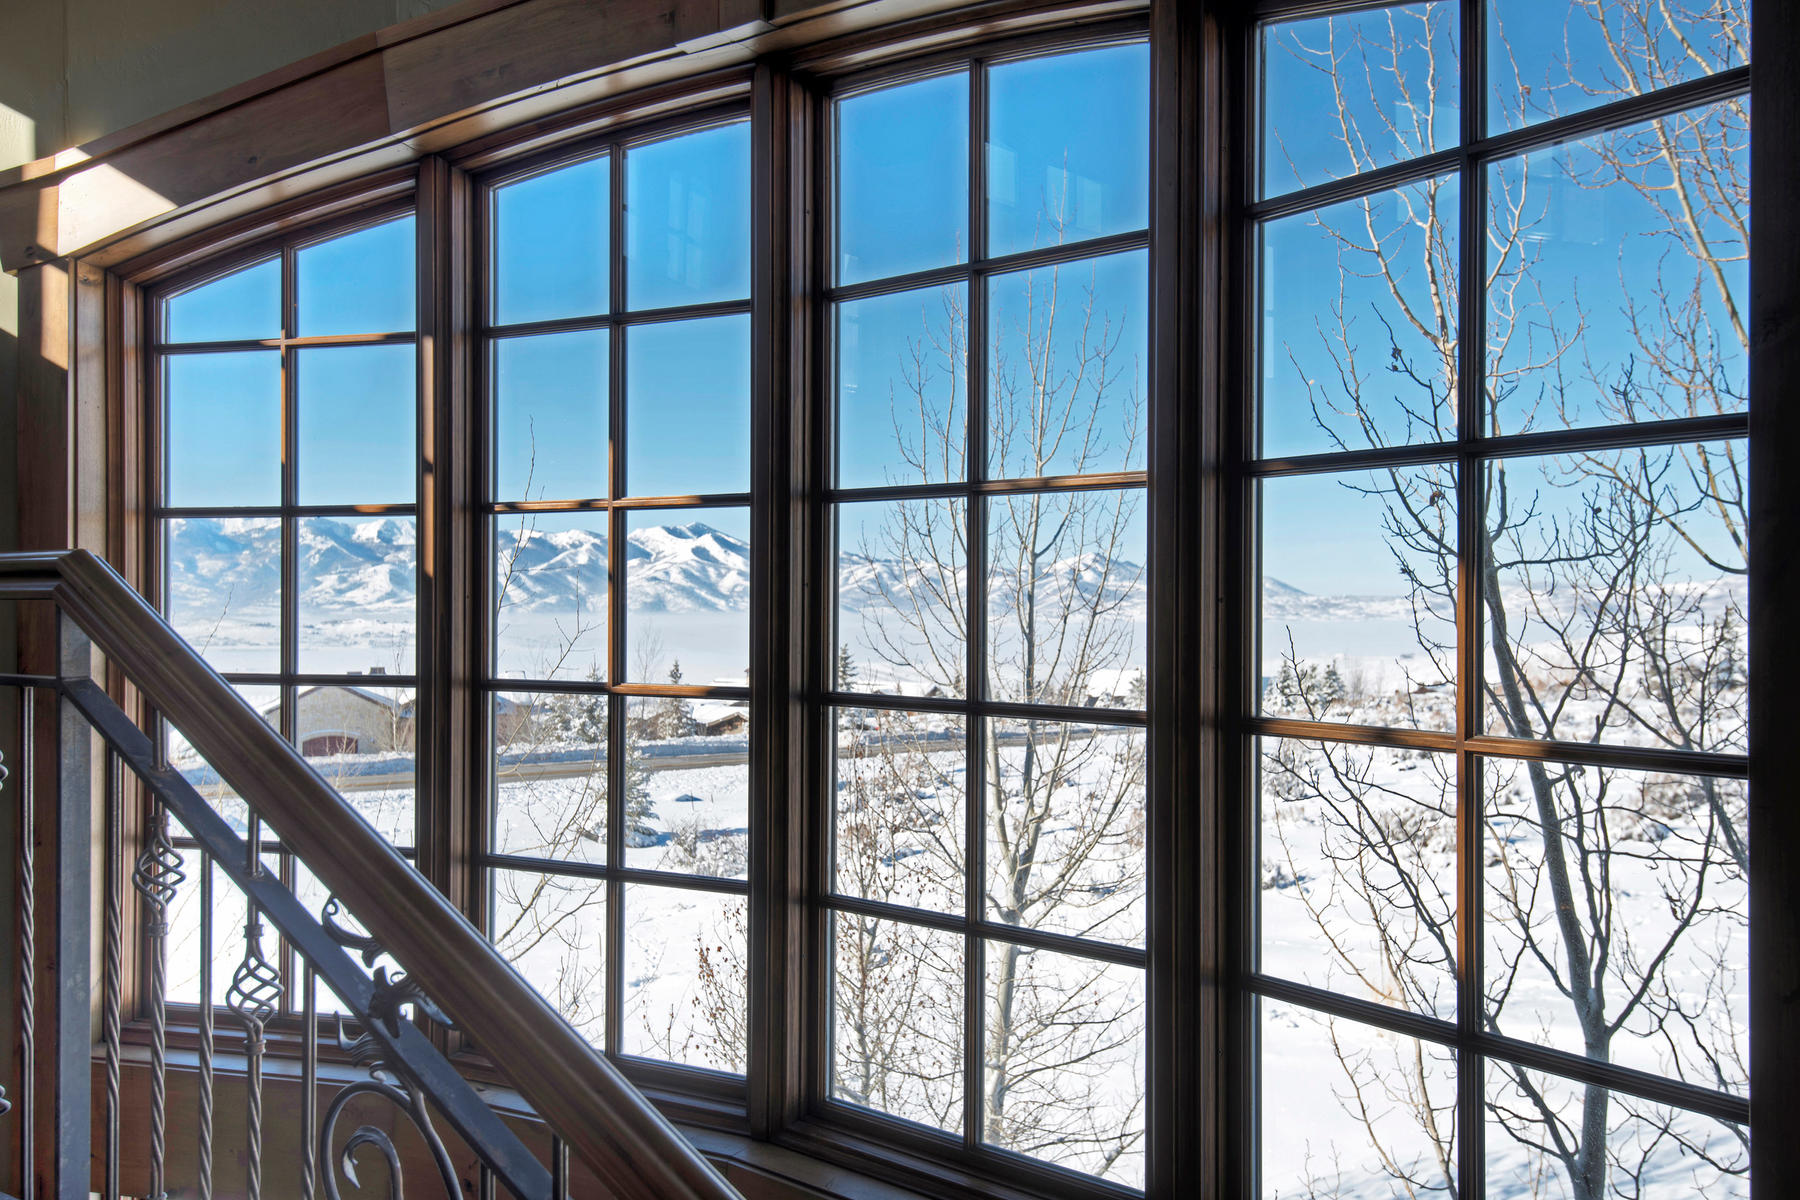 Additional photo for property listing at Charming European Craftsman 8080 N West Hills Trl Park City, Utah 84098 United States